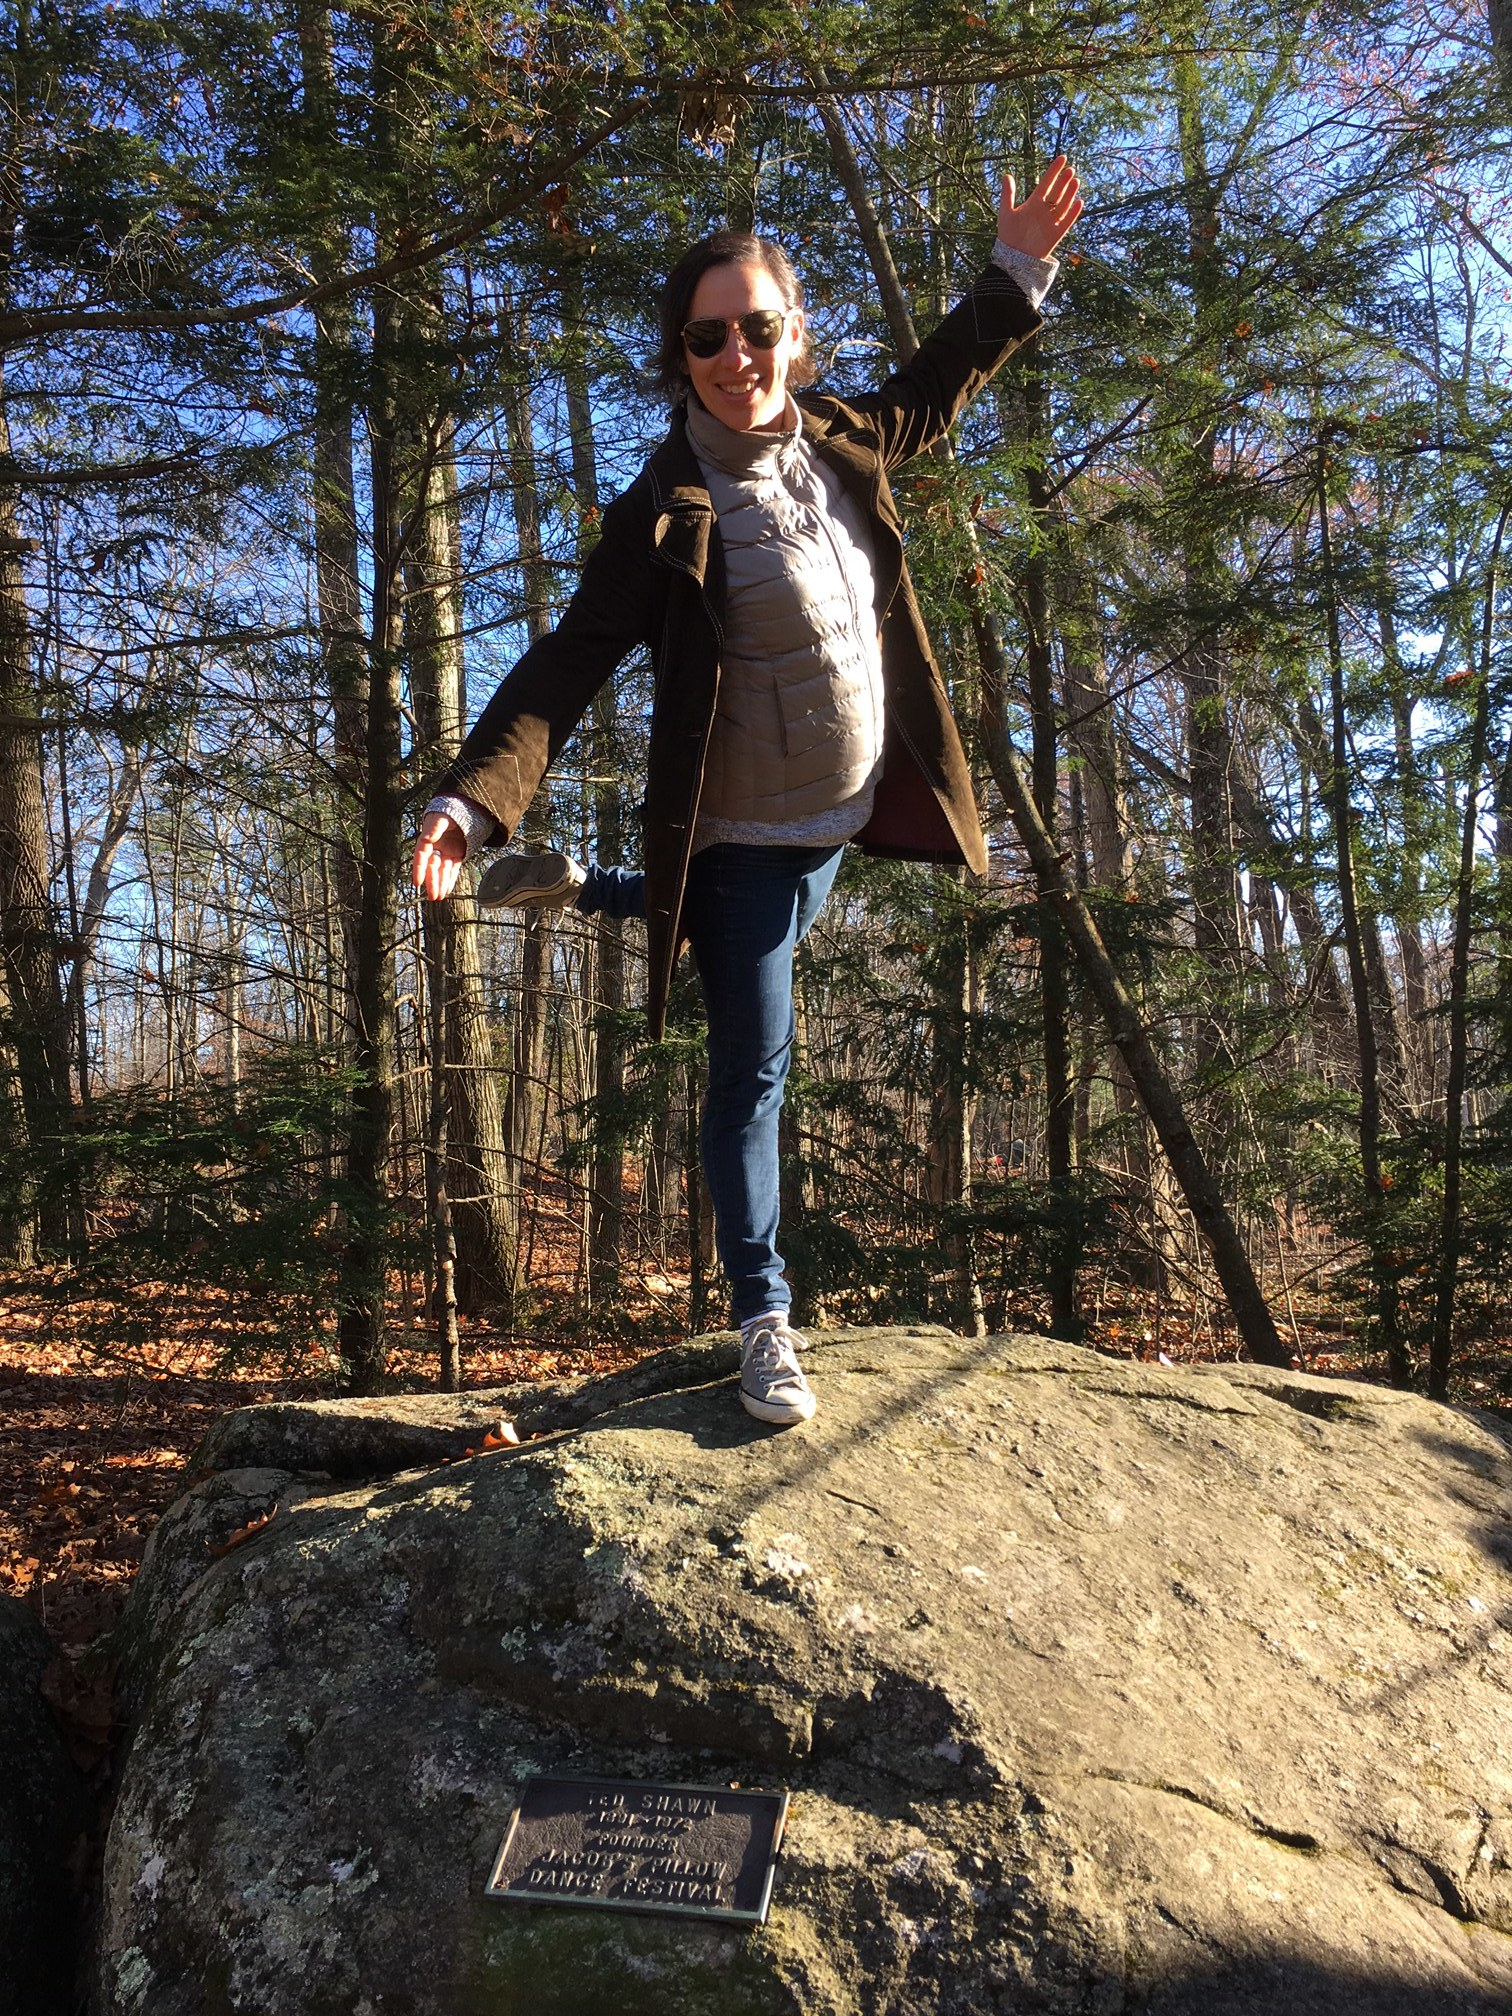 Lila on the famous rock at Jacob's Pillow, during the November 2017 rehearsal residency. Photo: Daniel Doolittle